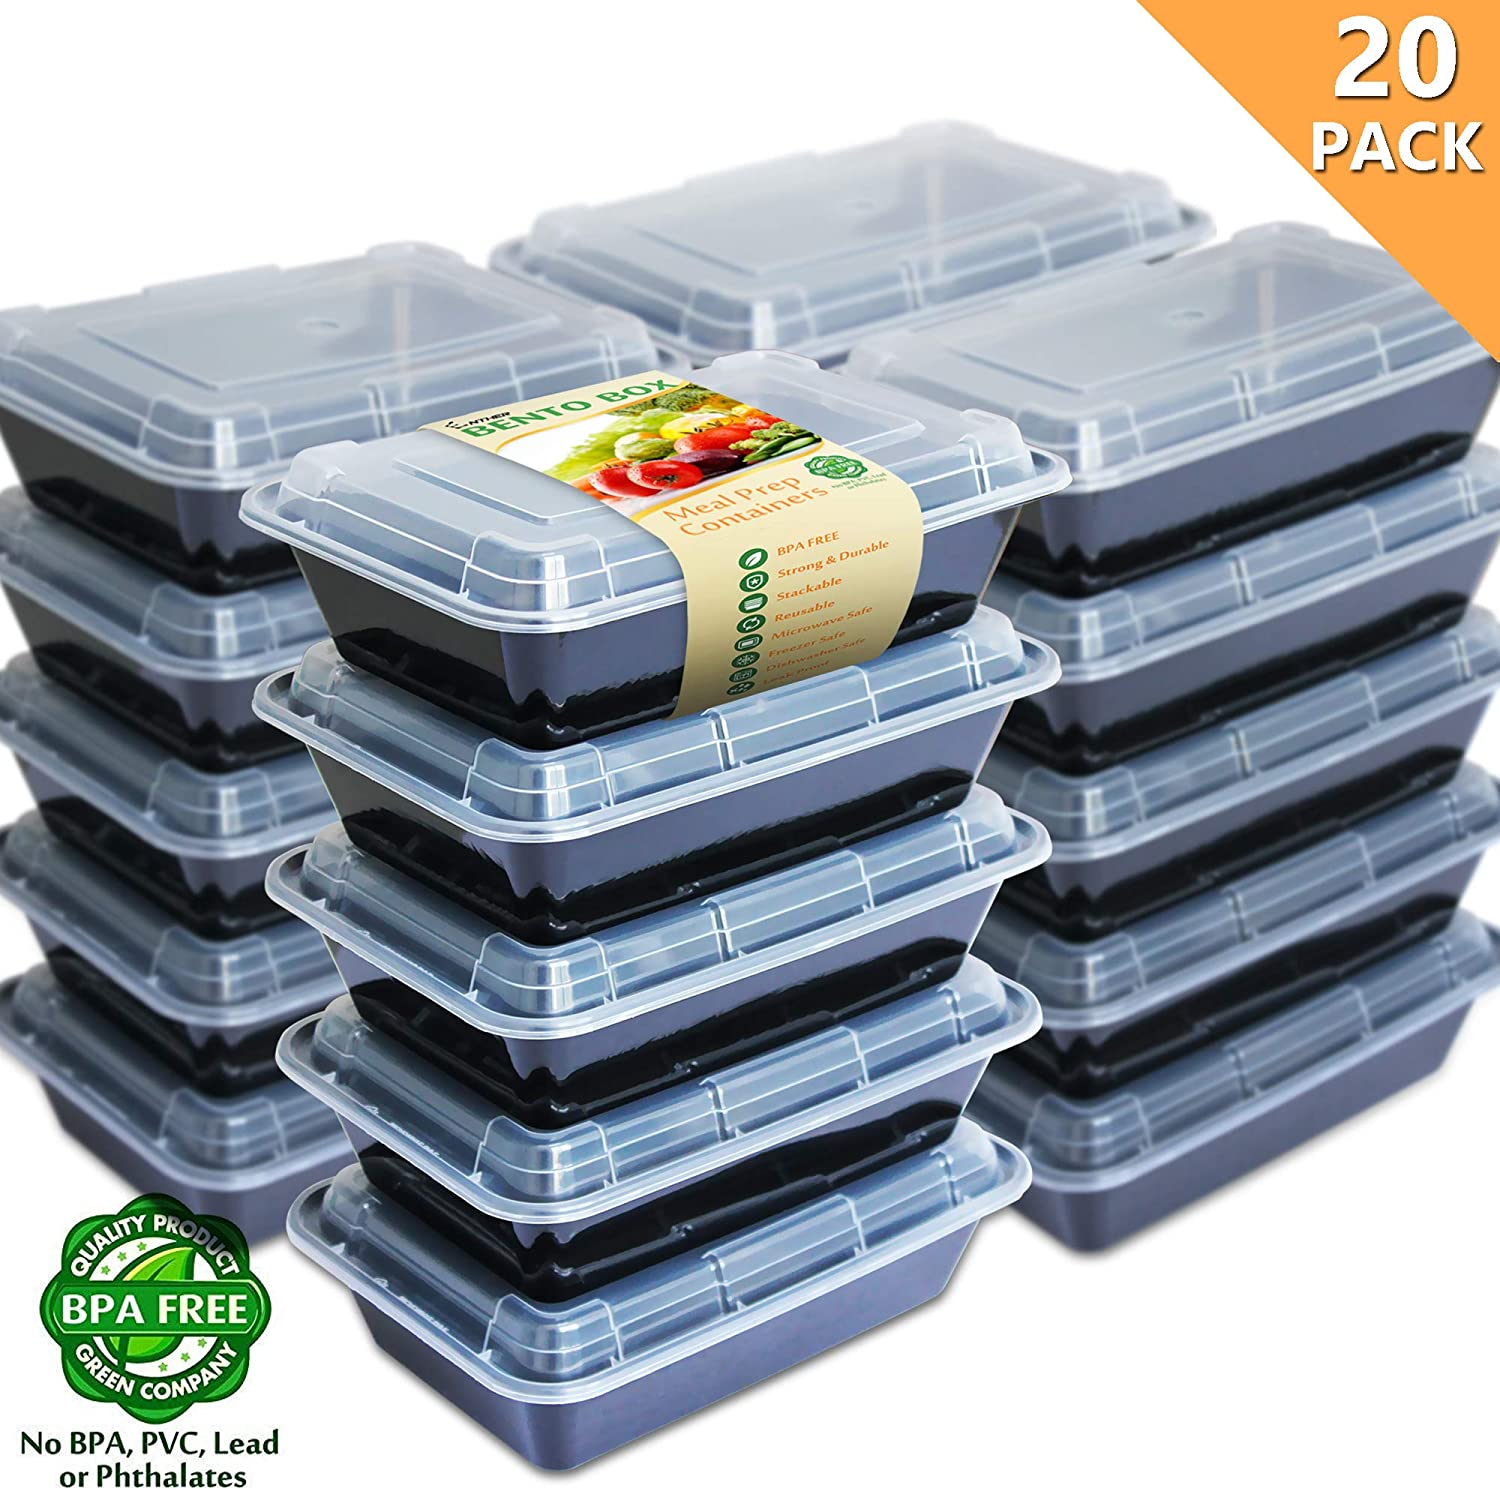 Enther [20 Pack] Single 1 Compartment Meal Prep Containers with Lids, Food Storage Bento Boxes, BPA Free, Reusable Lunch Box, Microwave/Dishwasher/Freezer Safe, Portion Control, New Version, 28oz 20PCCPT1